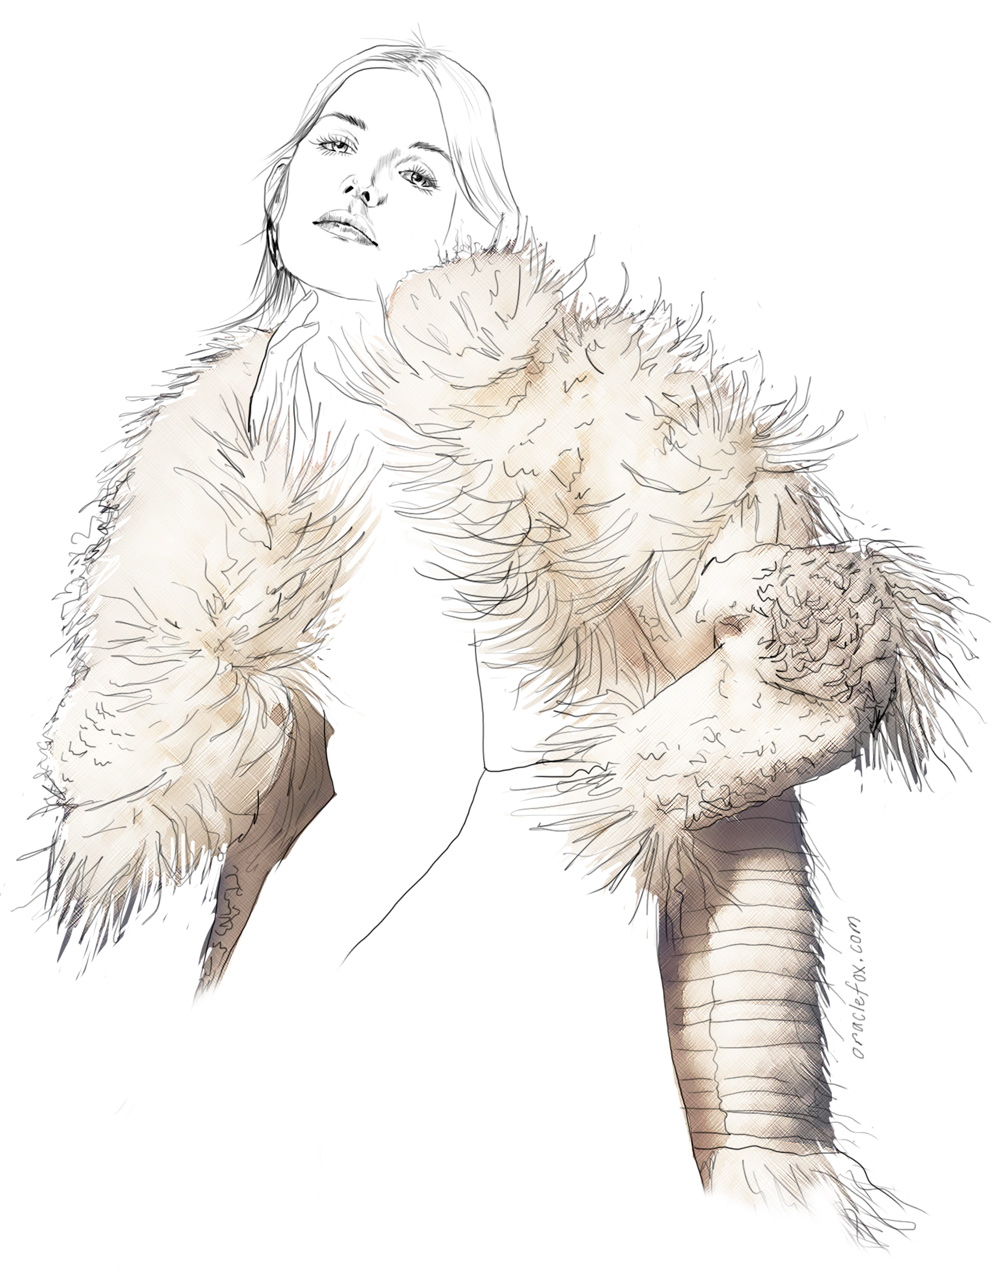 Isabel Marant, fur jacket, jur coat, cream, stella alias, ahmann, sean seng, harpers bazaar, us, august 2015, illustration, oracle fox, amanda shadforth